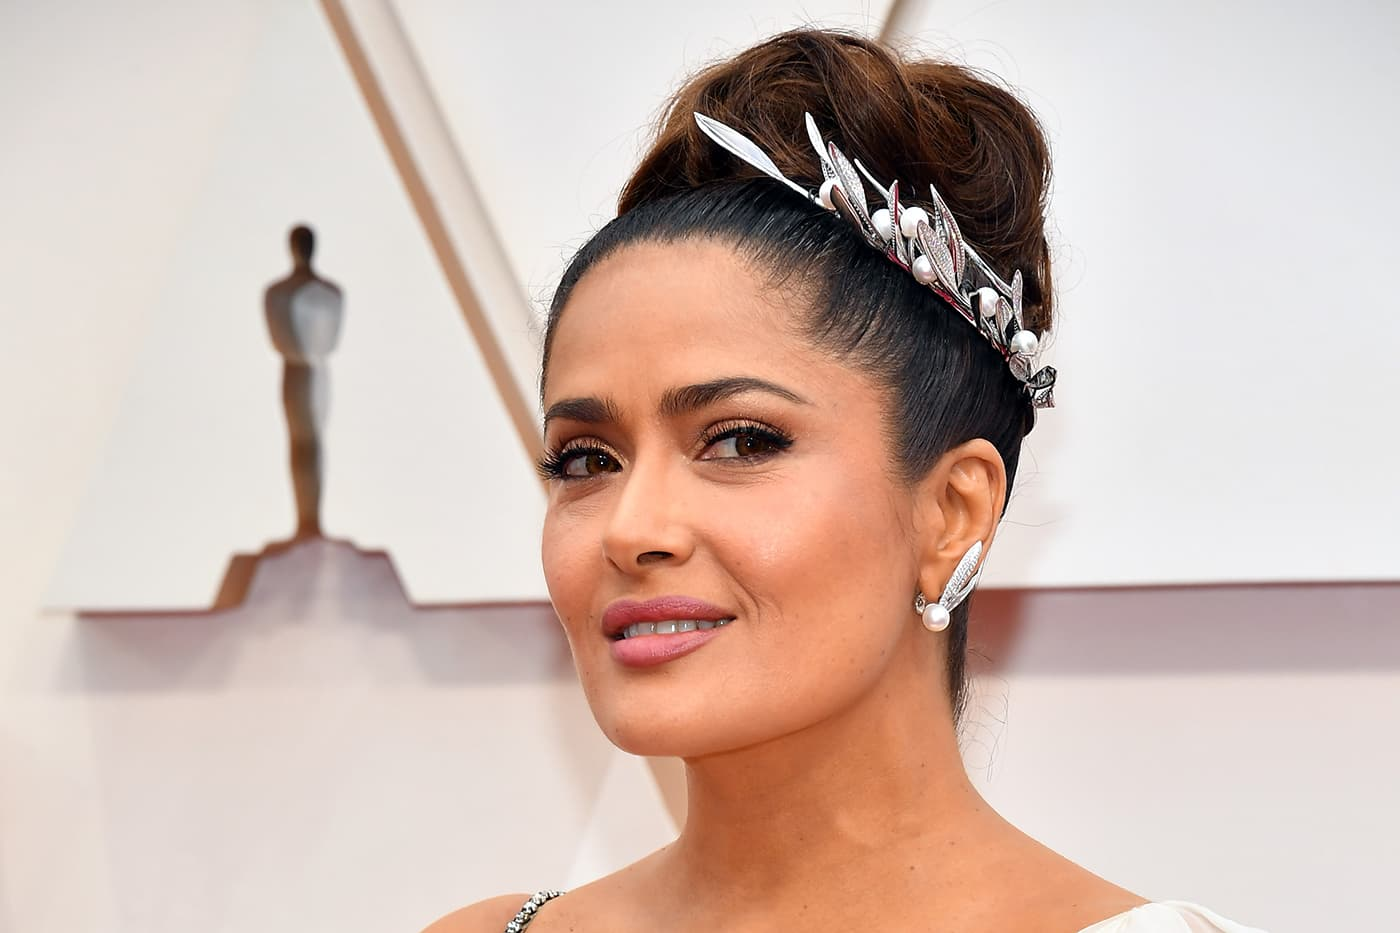 Salma Hayek wearing Boucheron Feuilles de Laurier necklace as headpiece and earrings, both with diamonds and pearls in white gold